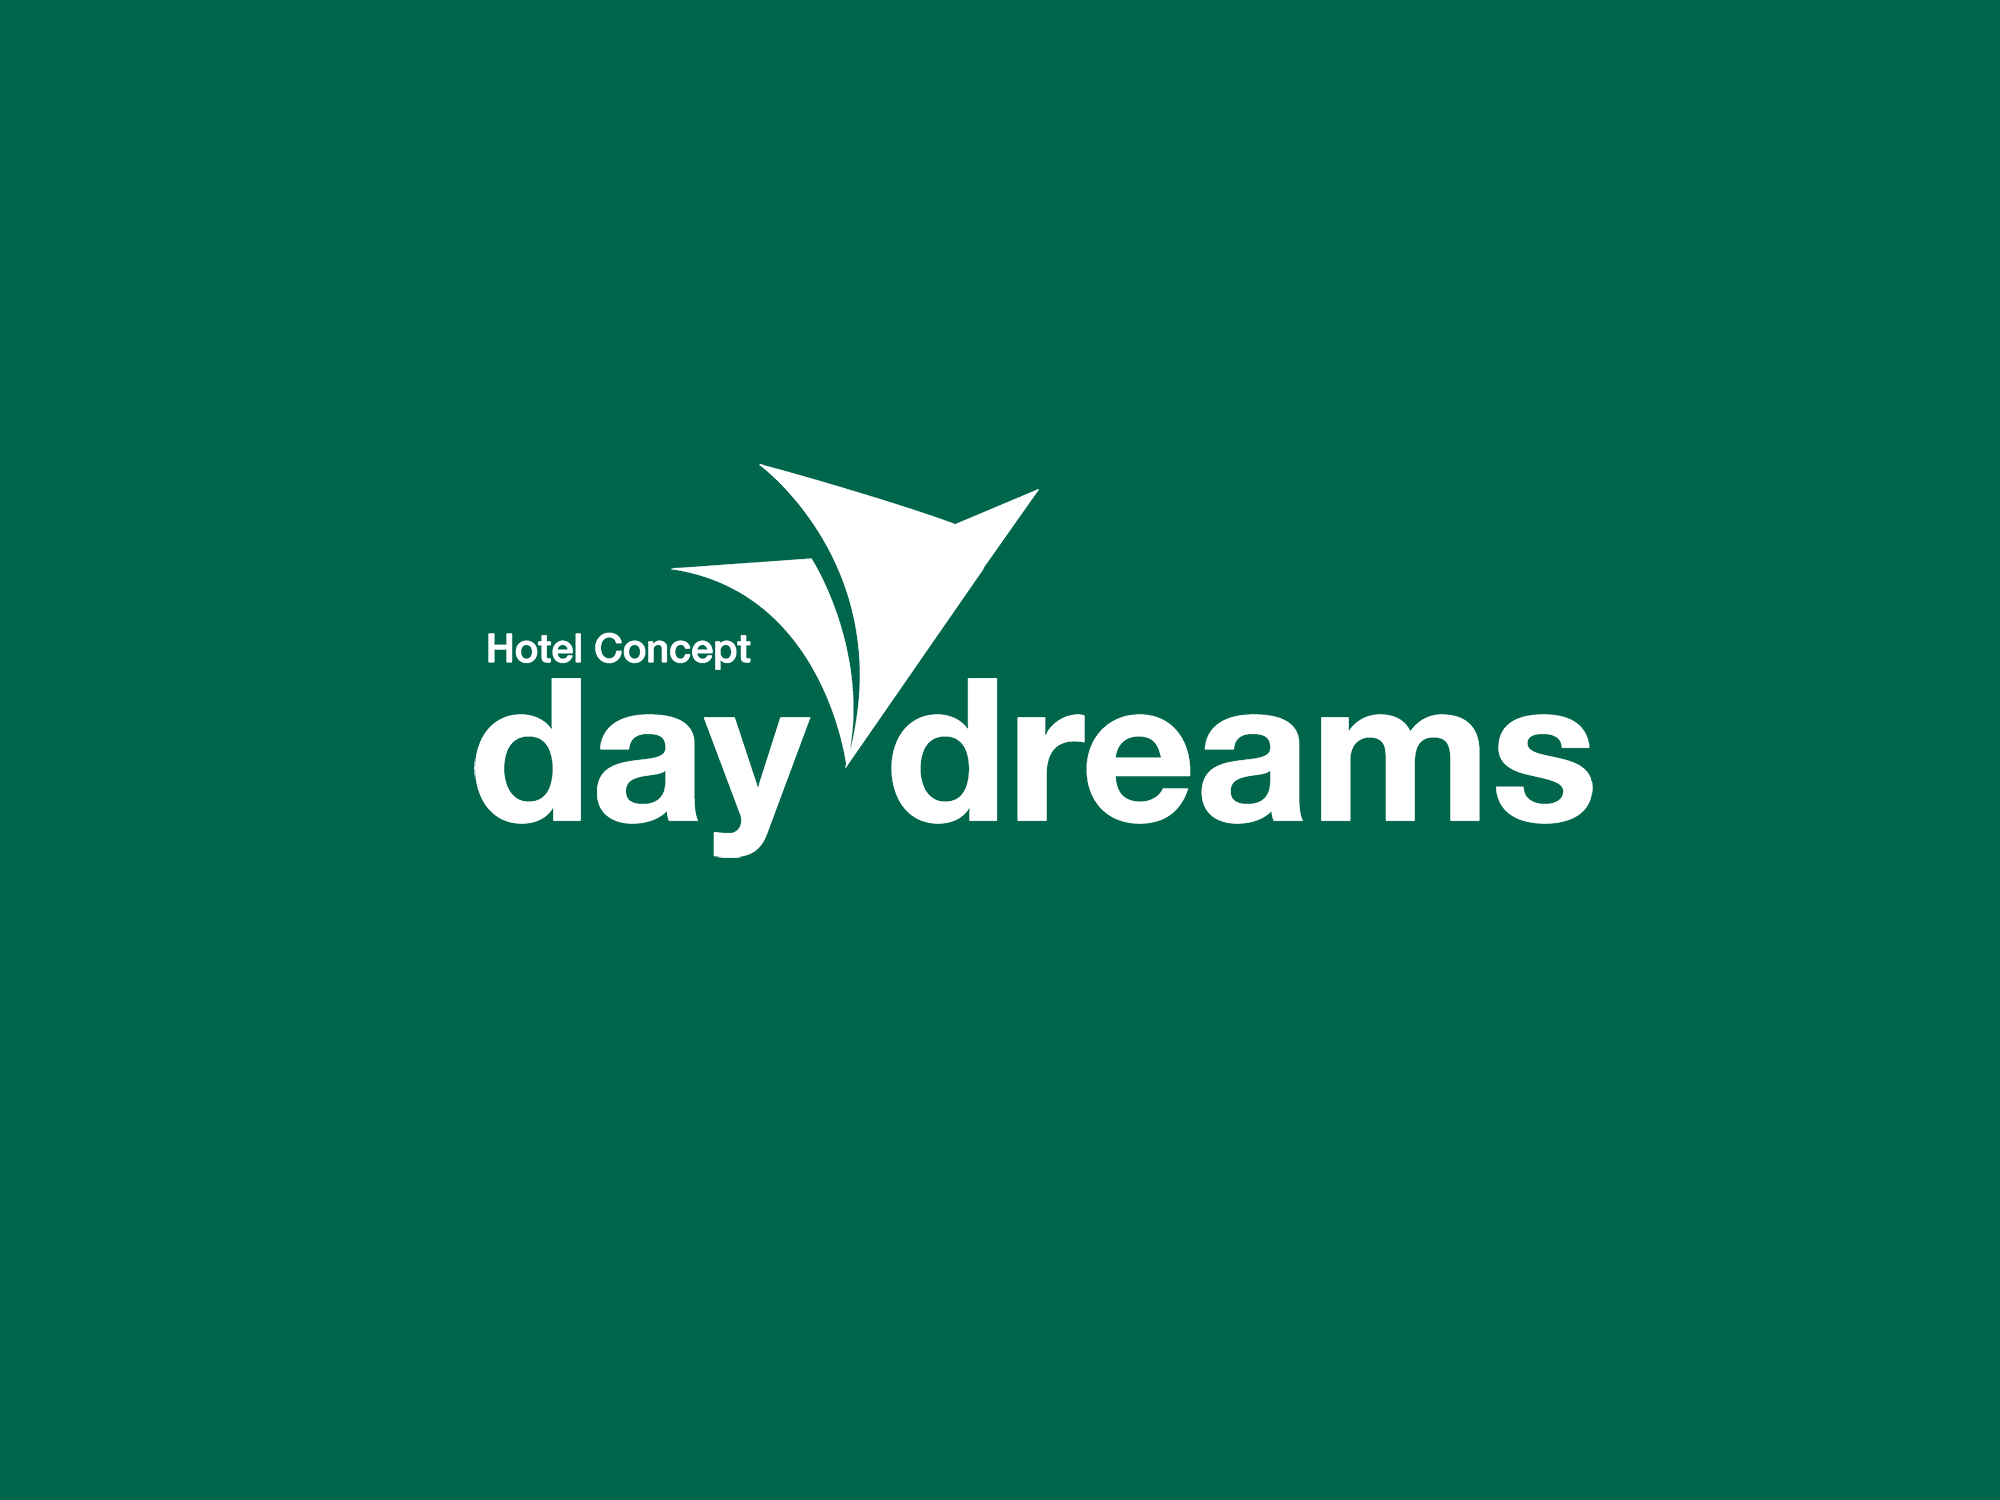 Daydreams-logo